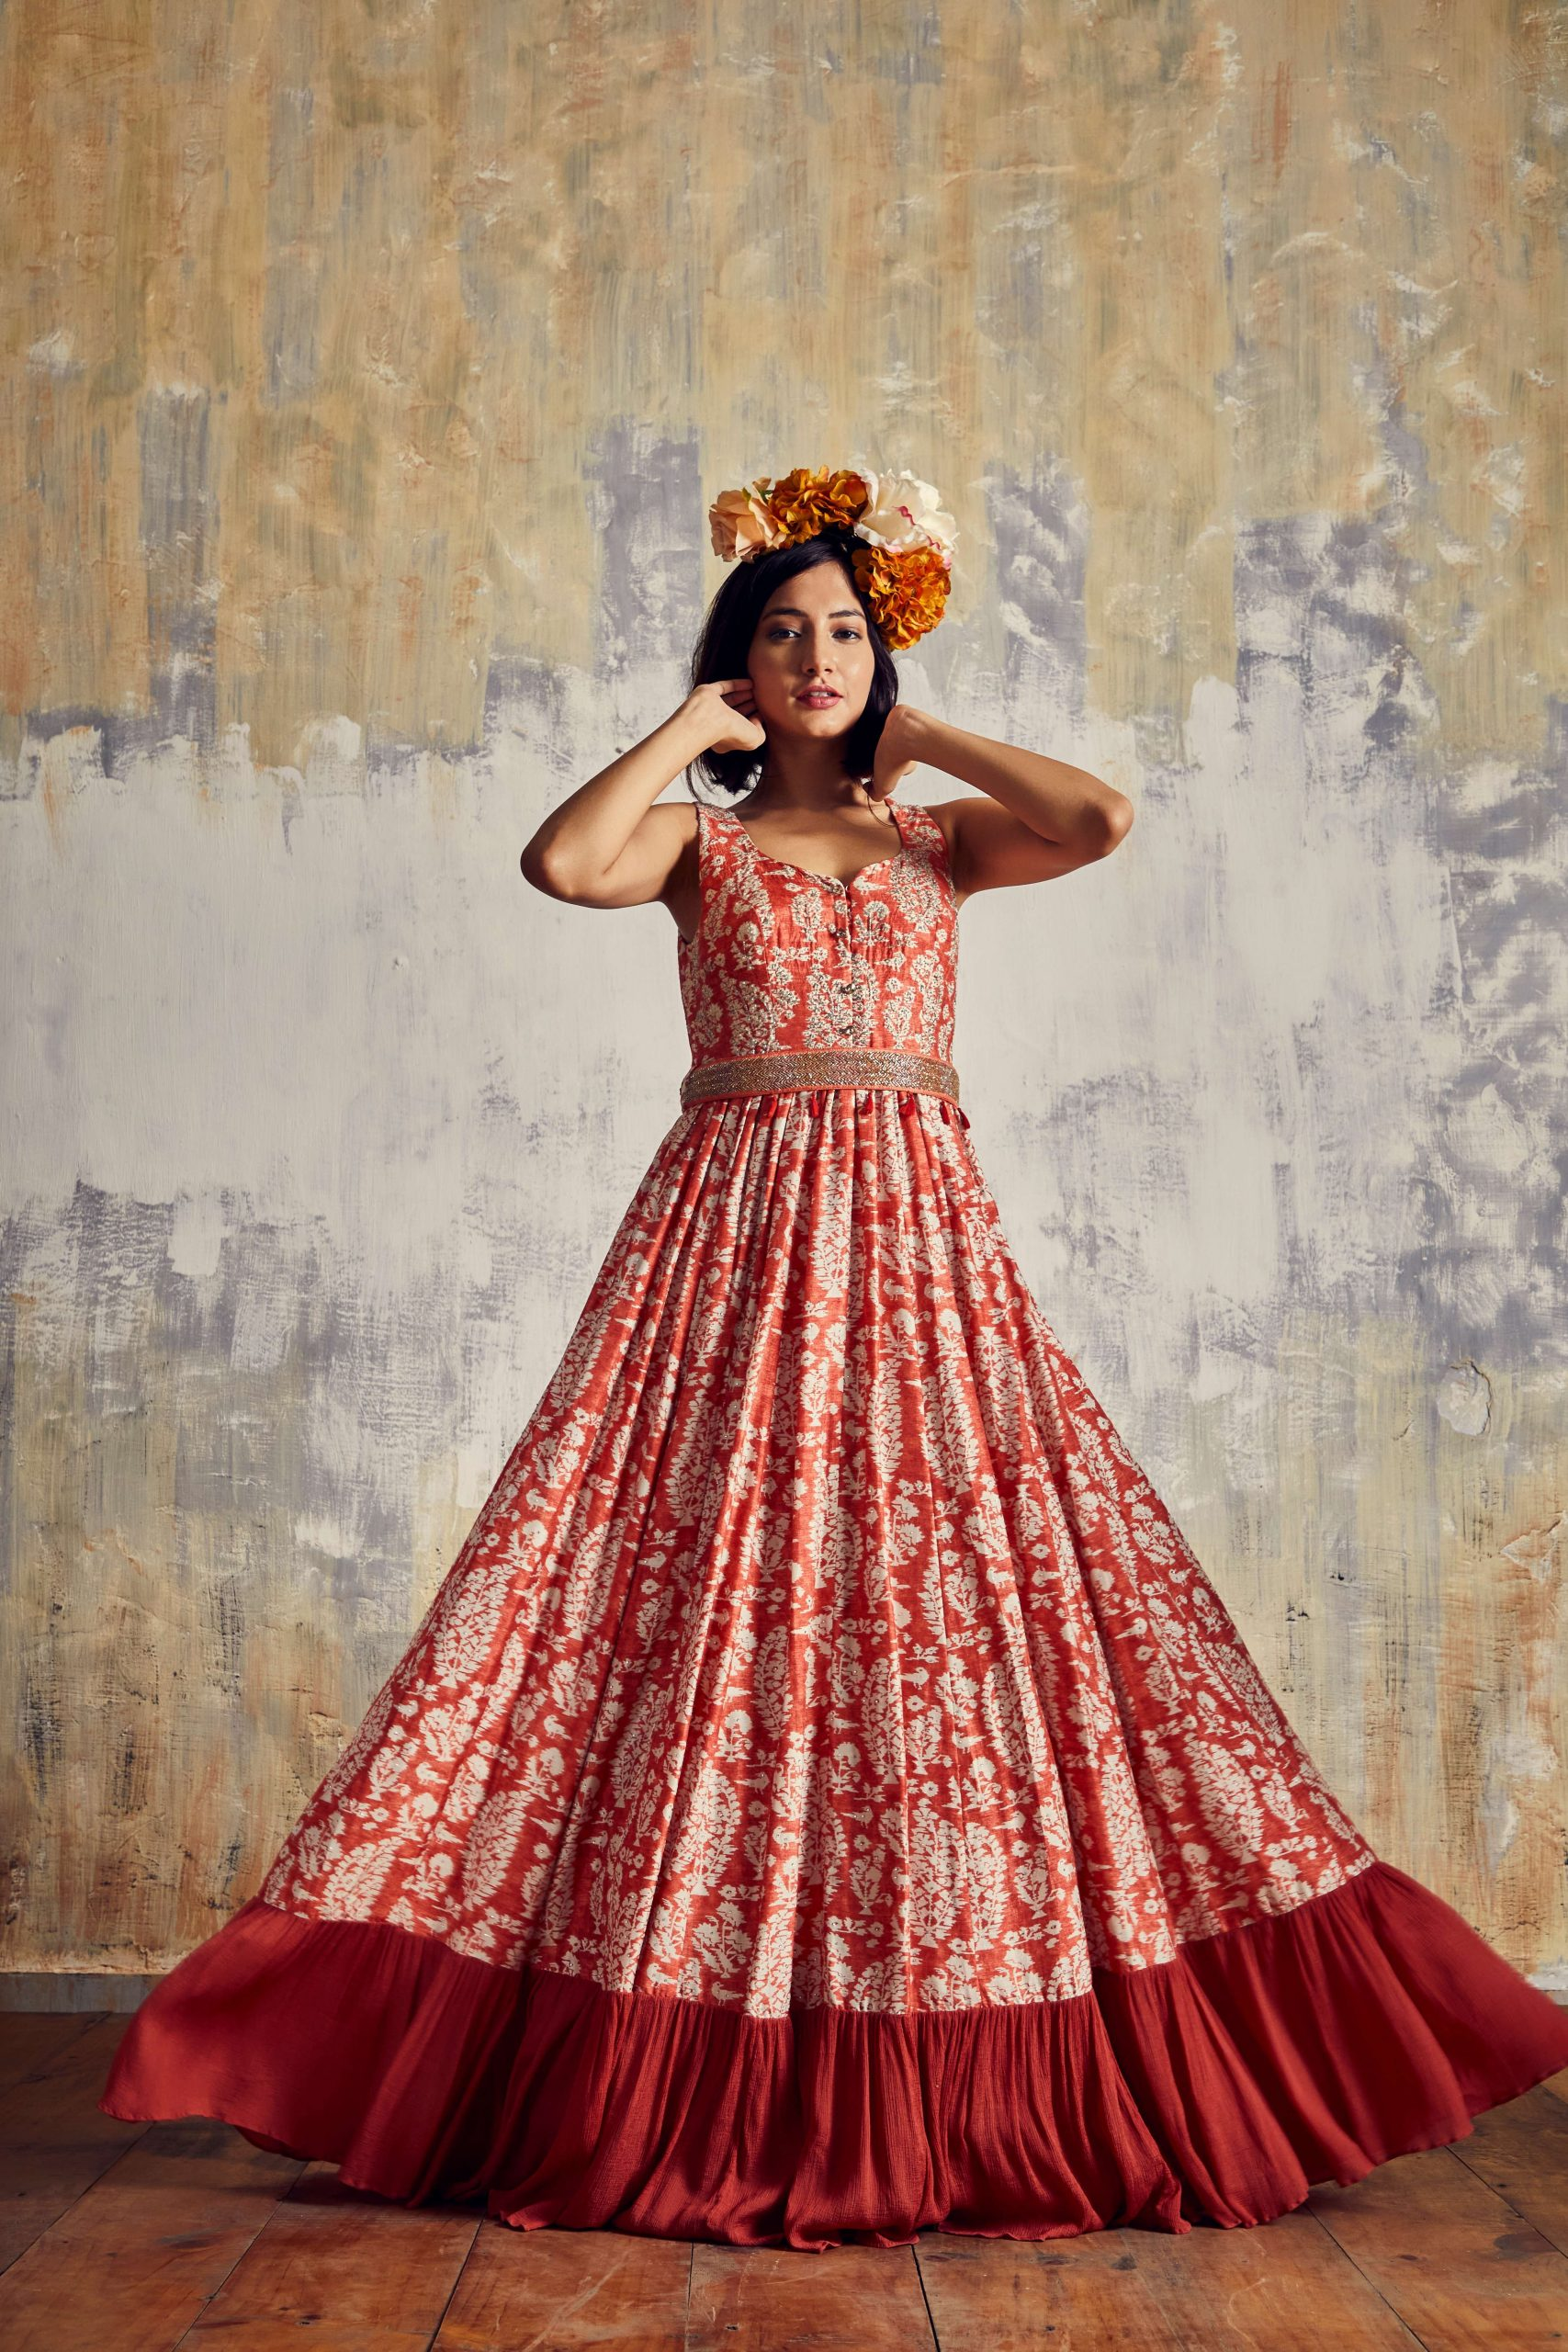 Trend setting Crimson red long dress in Tussar with embellished belt. The red chiffon frilled cut the bottom uplifts the style quotient.